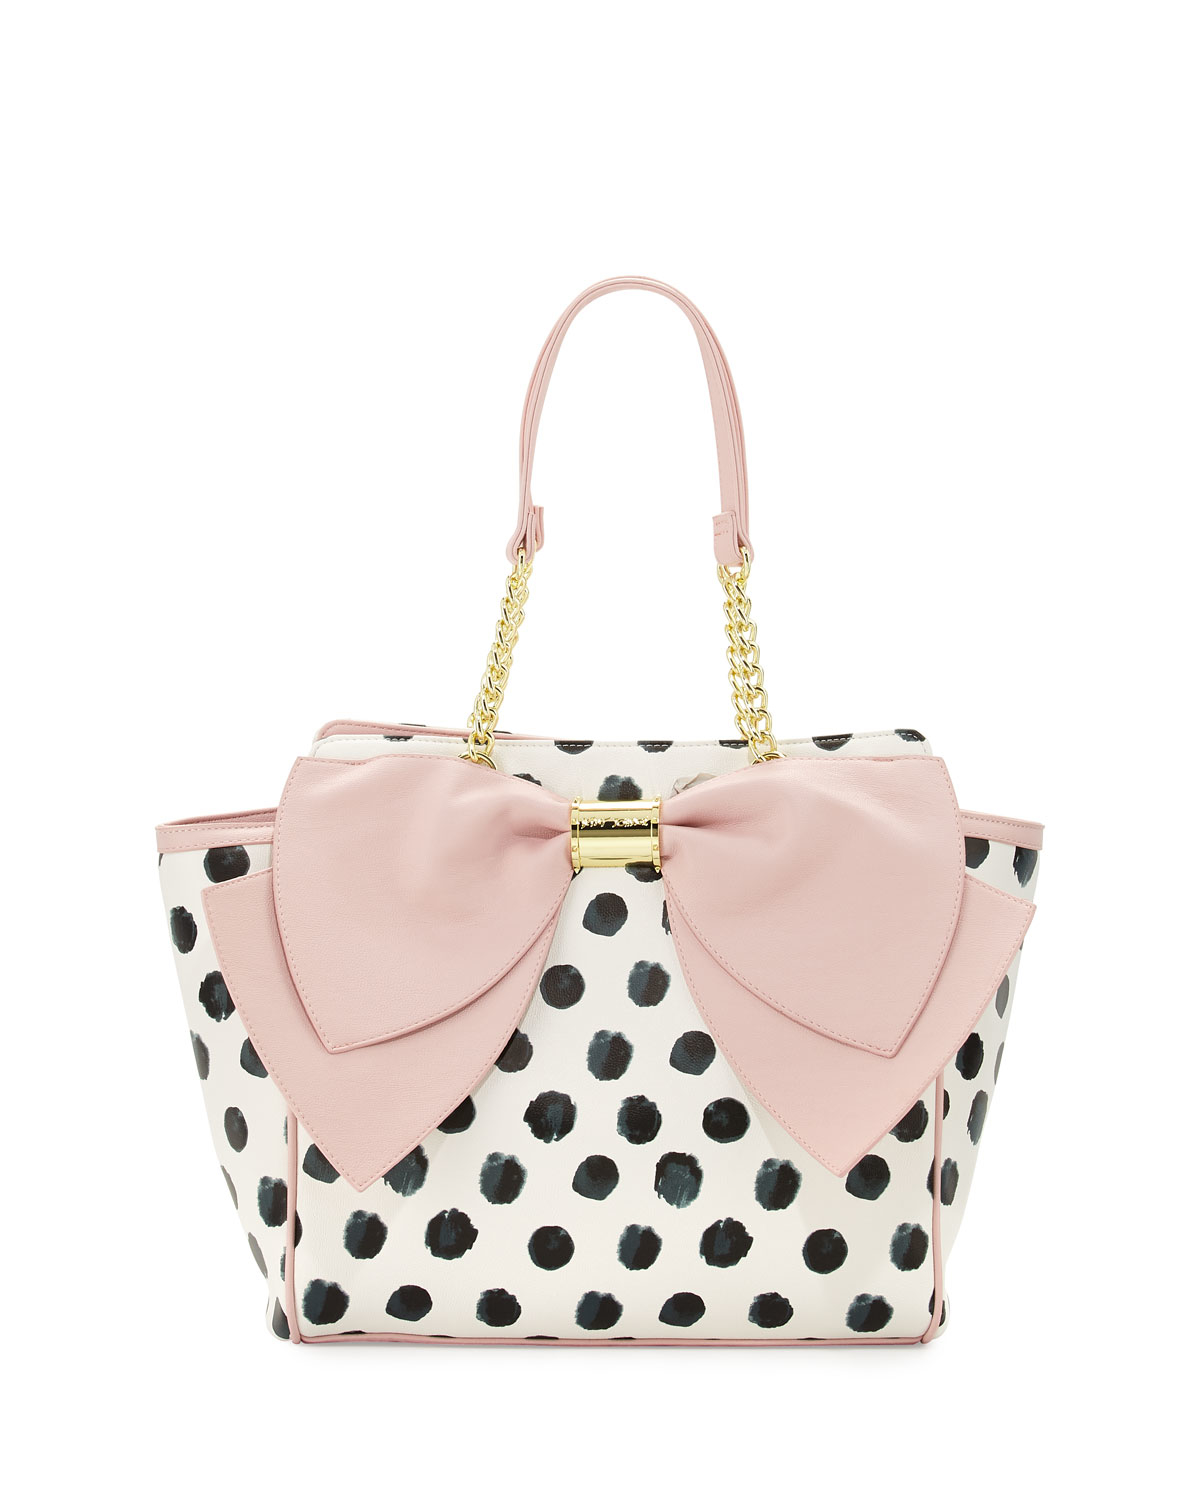 Lyst - Betsey Johnson Signature Bow Polka-dot Tote Bag in ...